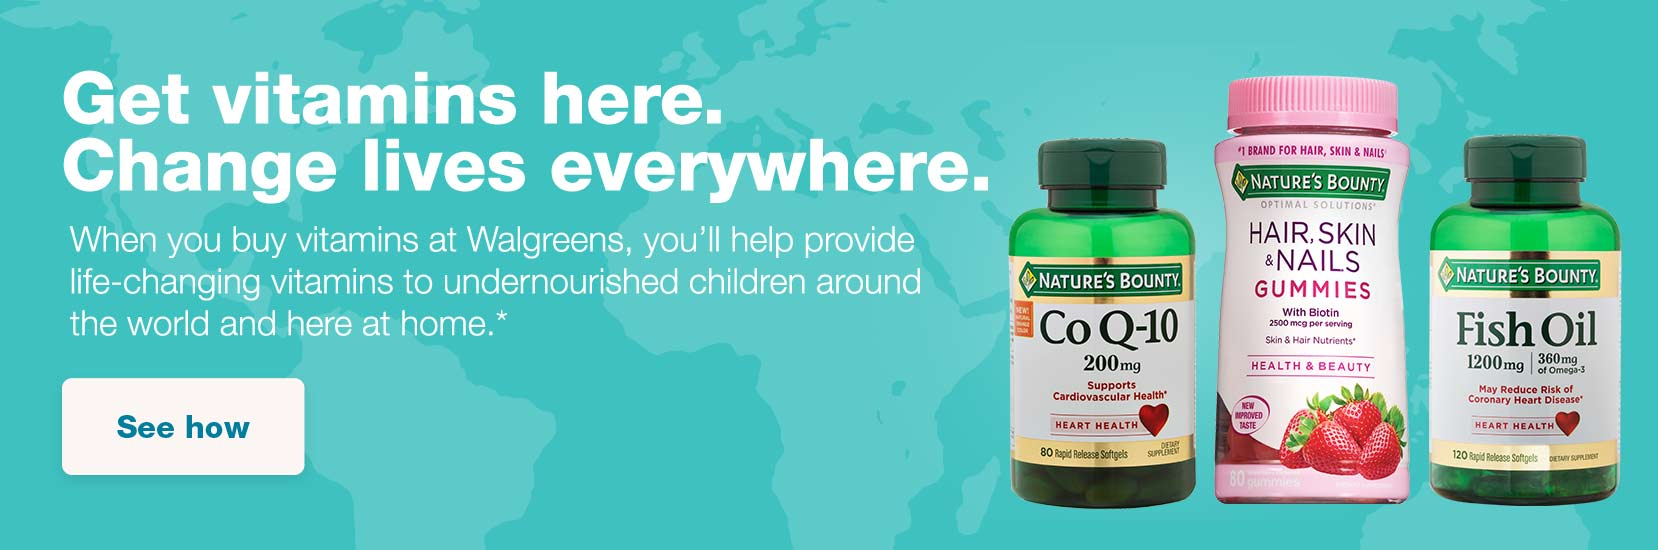 Get vitamins here. Change lives everywhere. When you buy vitamins at Walgreens, you'll help provide life-changing vitamins to undernourished children around the world and here at home.* See how.